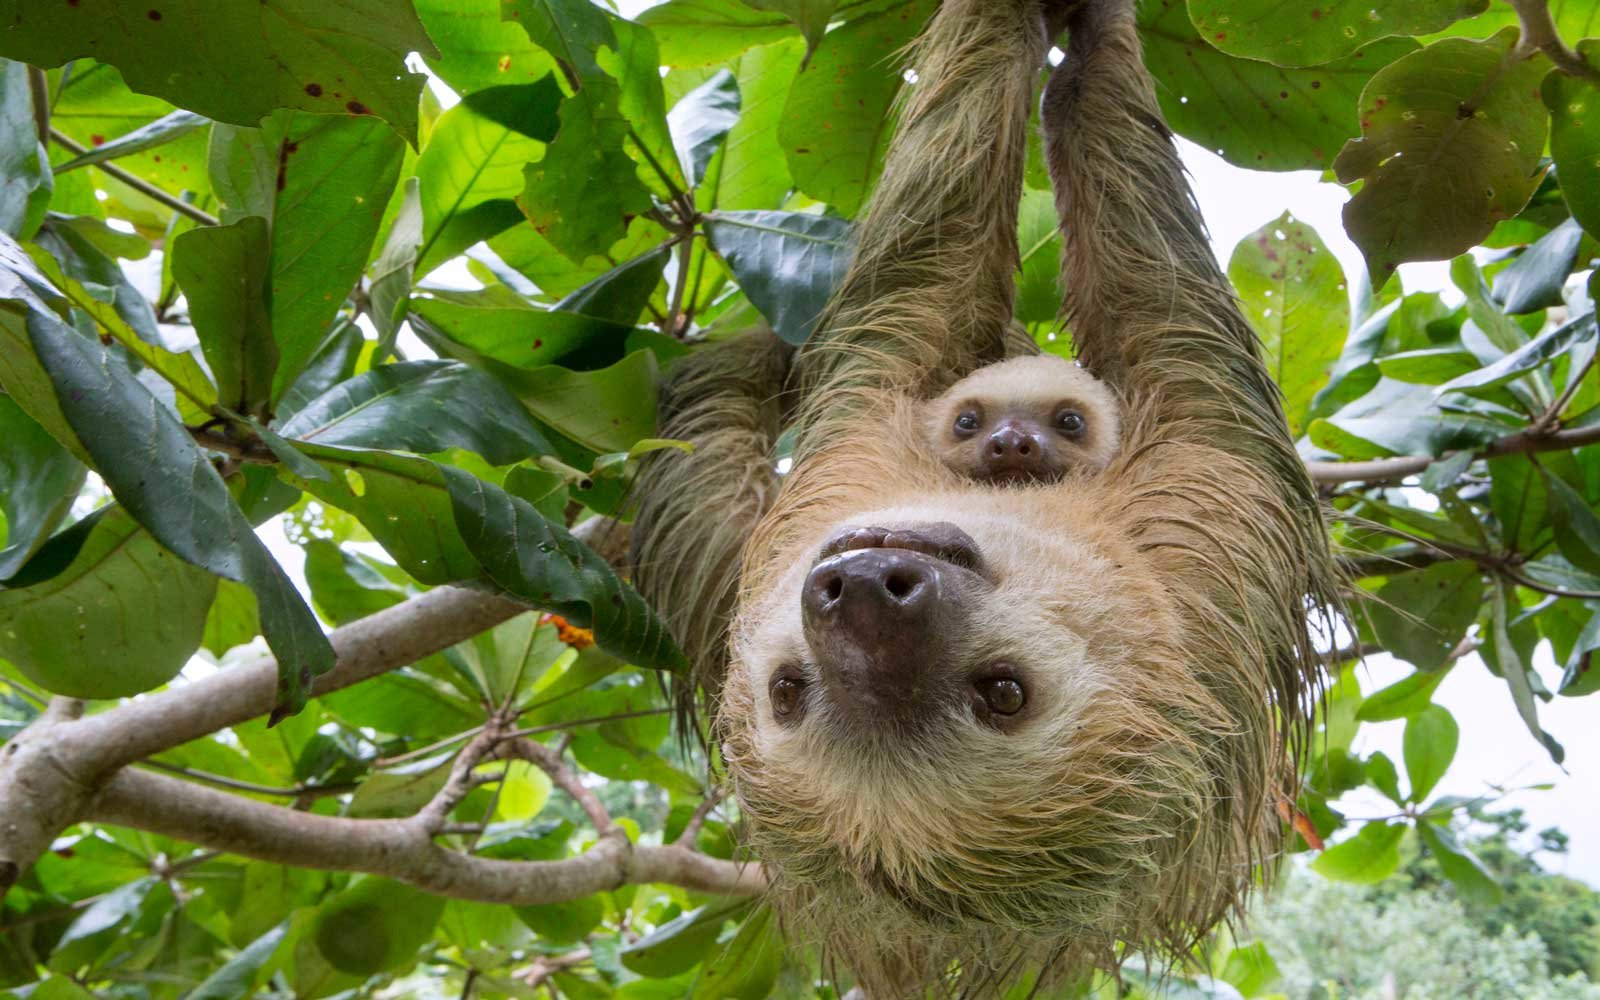 sloth baby mom toed animals costa rica mother wildlife choloepus suzi eszterhas hoffmanni hoffmann hoffmanns minden uploaded sloths wild around